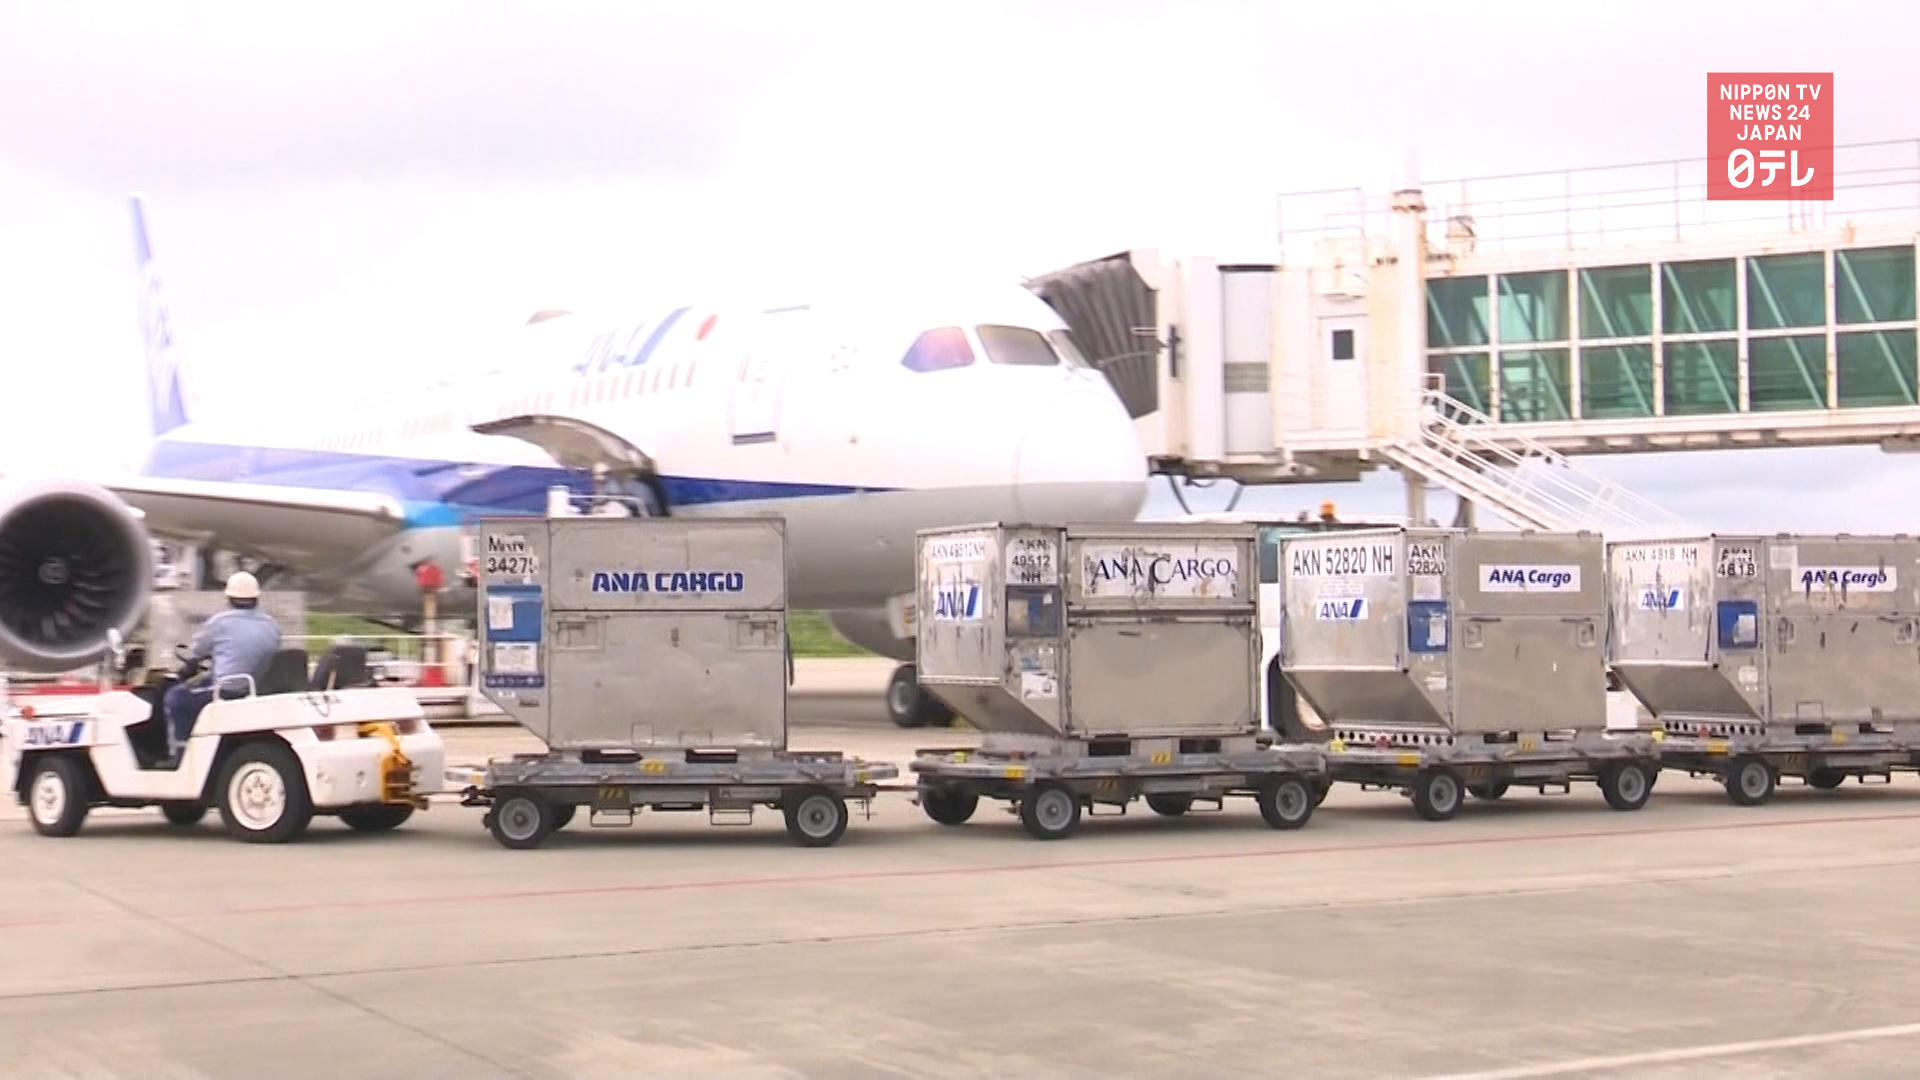 Okinawa island charters flight to deliver products to Tokyo